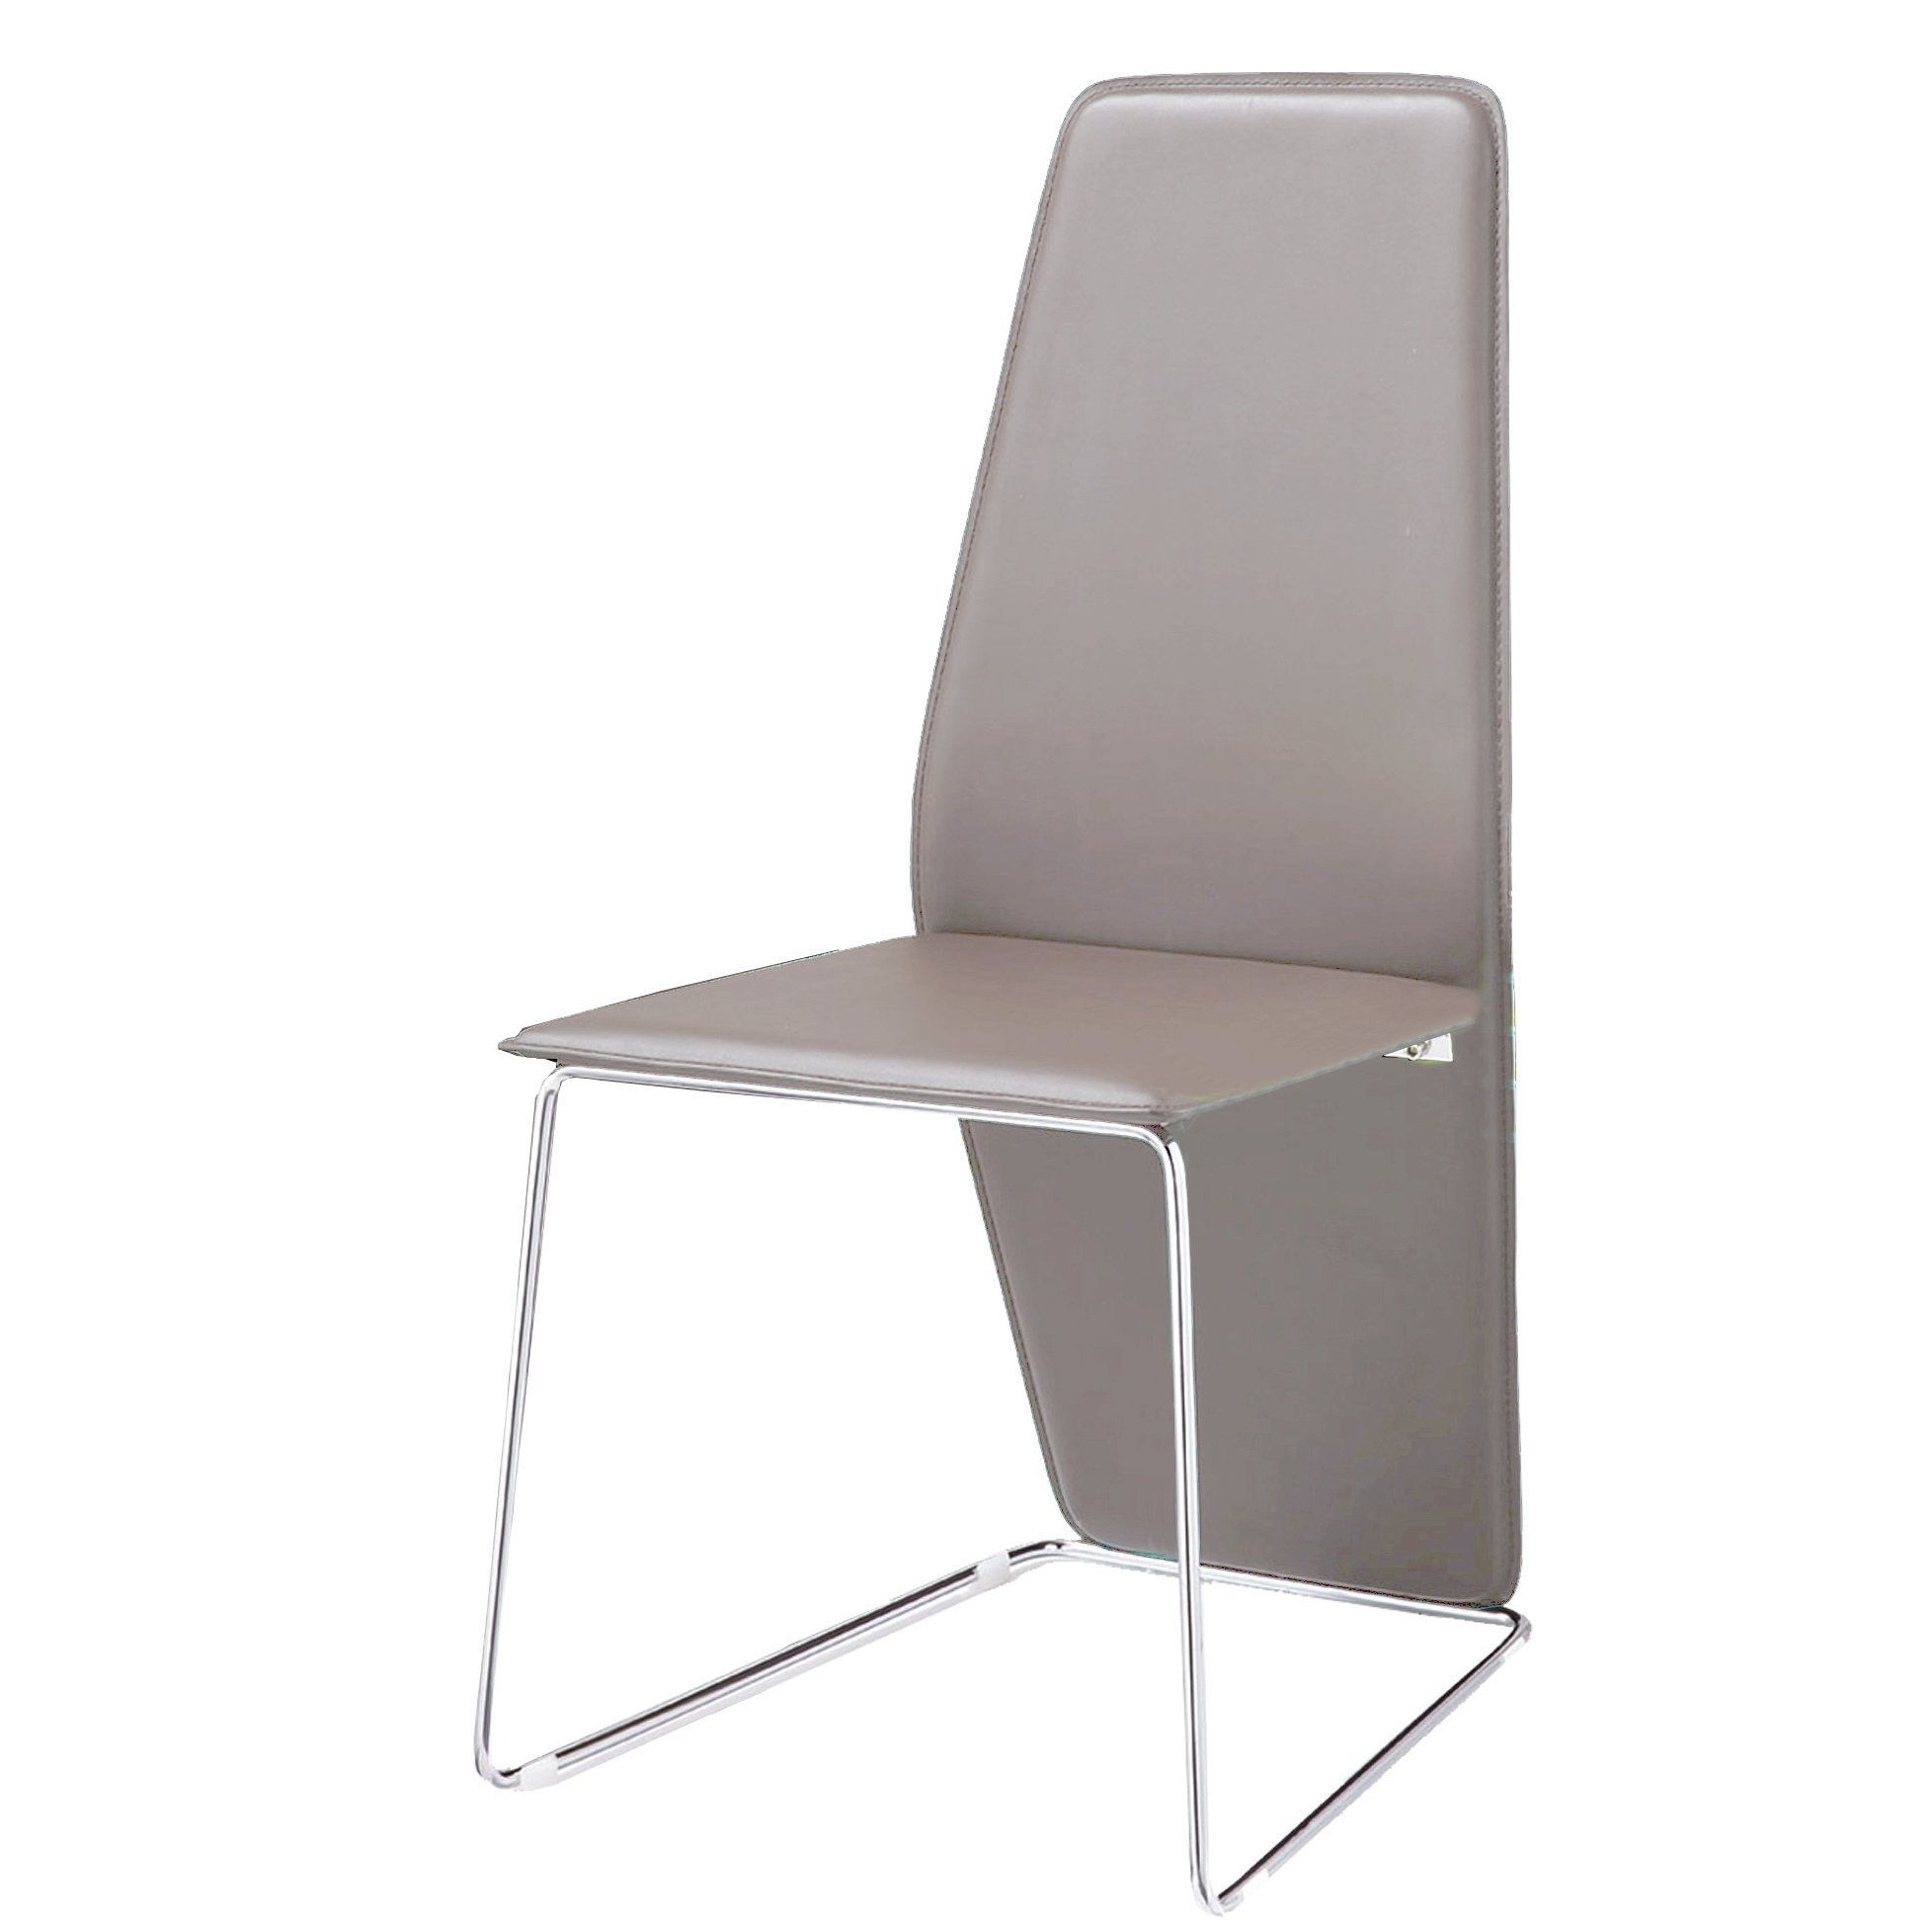 Chrome Dining Room Chairs Within Trendy Bellini Logan Grey Leather And Chrome Dining Chair (Set Of 2) (Light (Gallery 22 of 25)